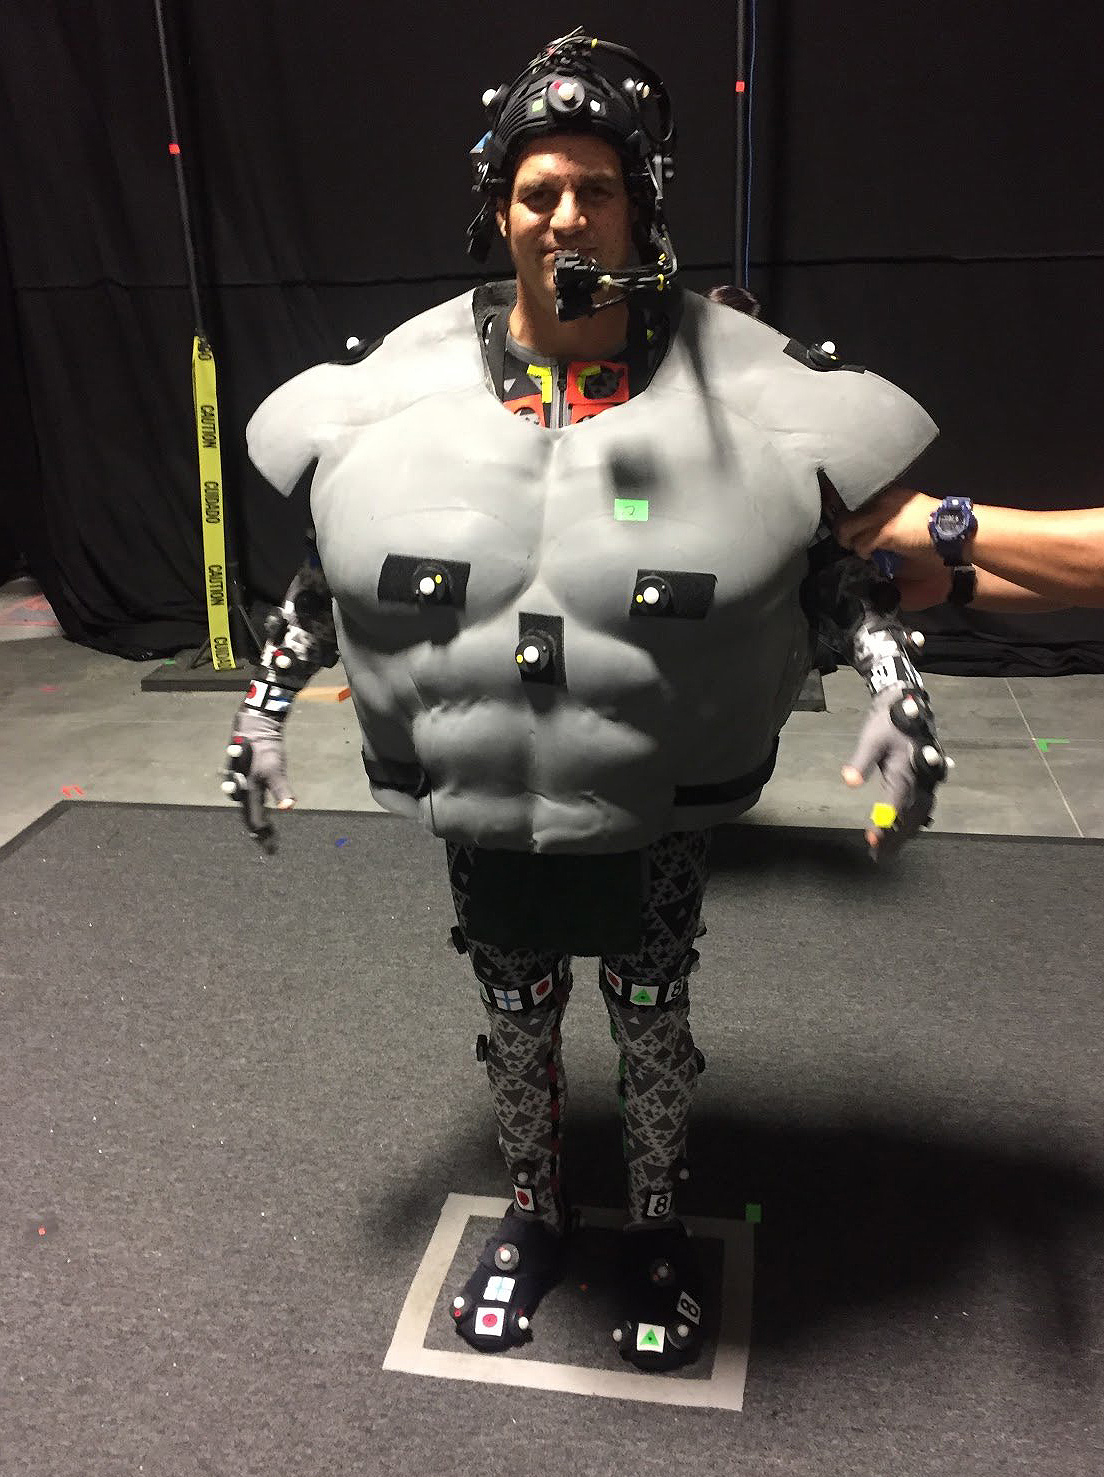 Mark Ruffalo Behind-the-Scenes in Hulk outfit